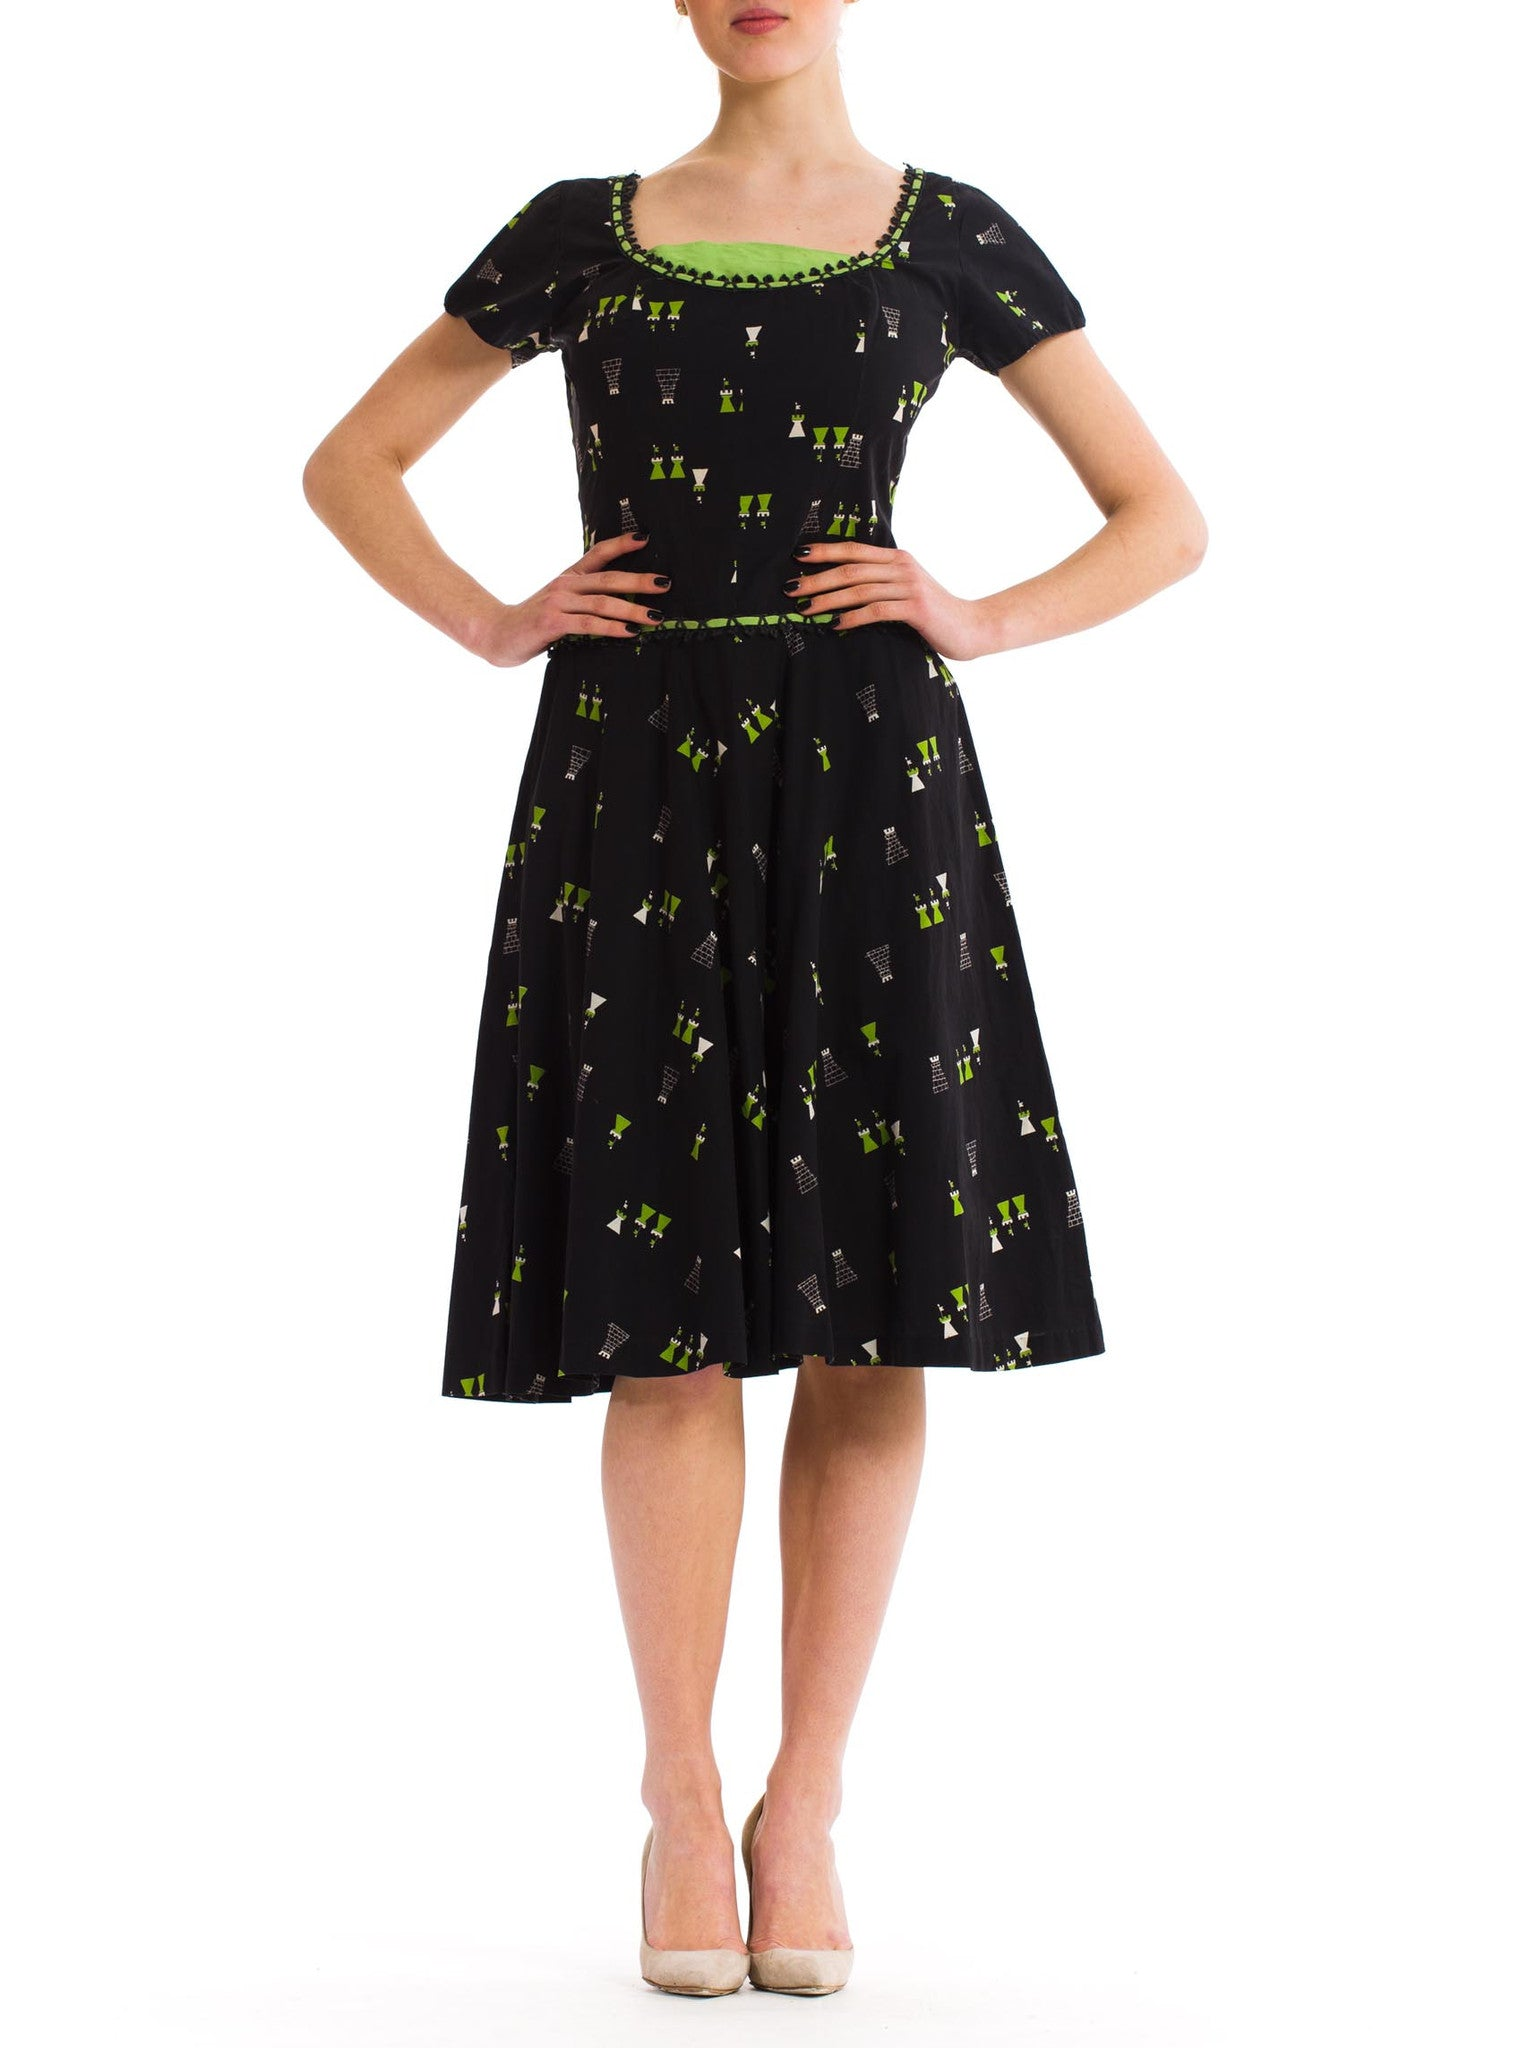 Sweet Vintage 1950s Black and Green Cotton Dress